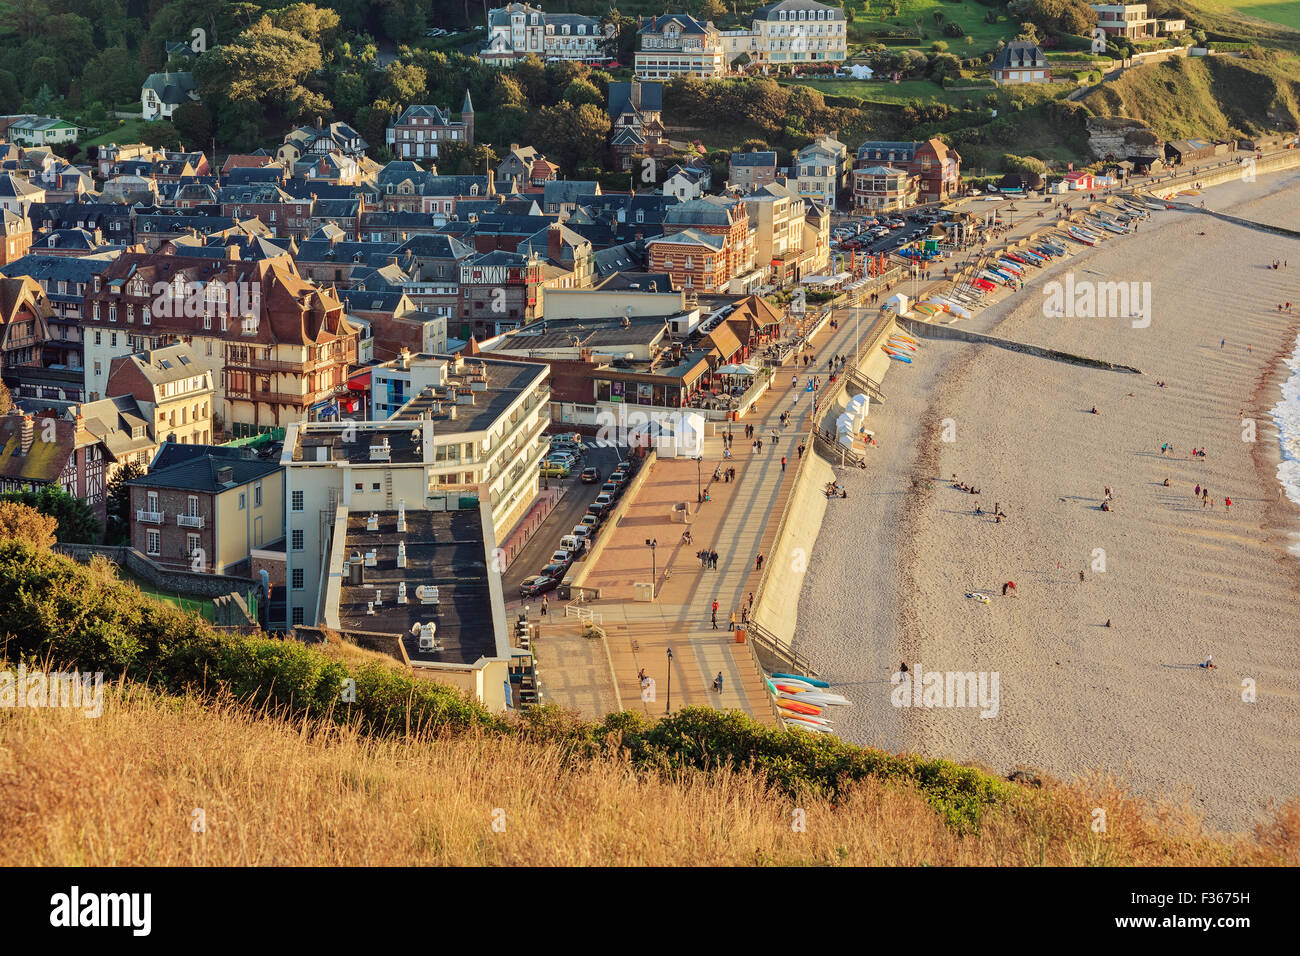 Etretat commune from viewpoint, France Stock Photo